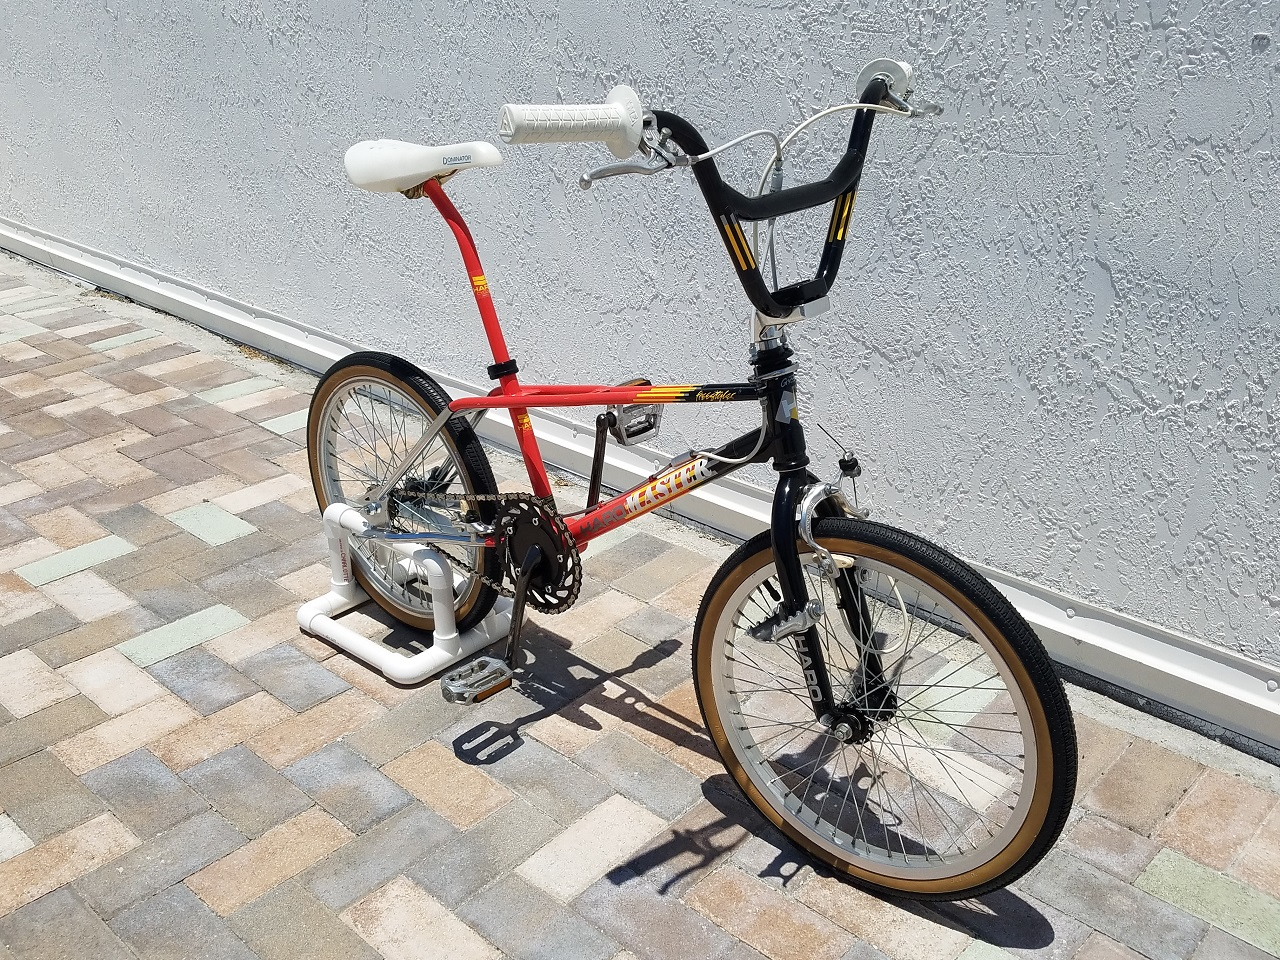 http://uploads.bmxmuseum.com/user-images/146942/frontsmall5914e45d78.jpg